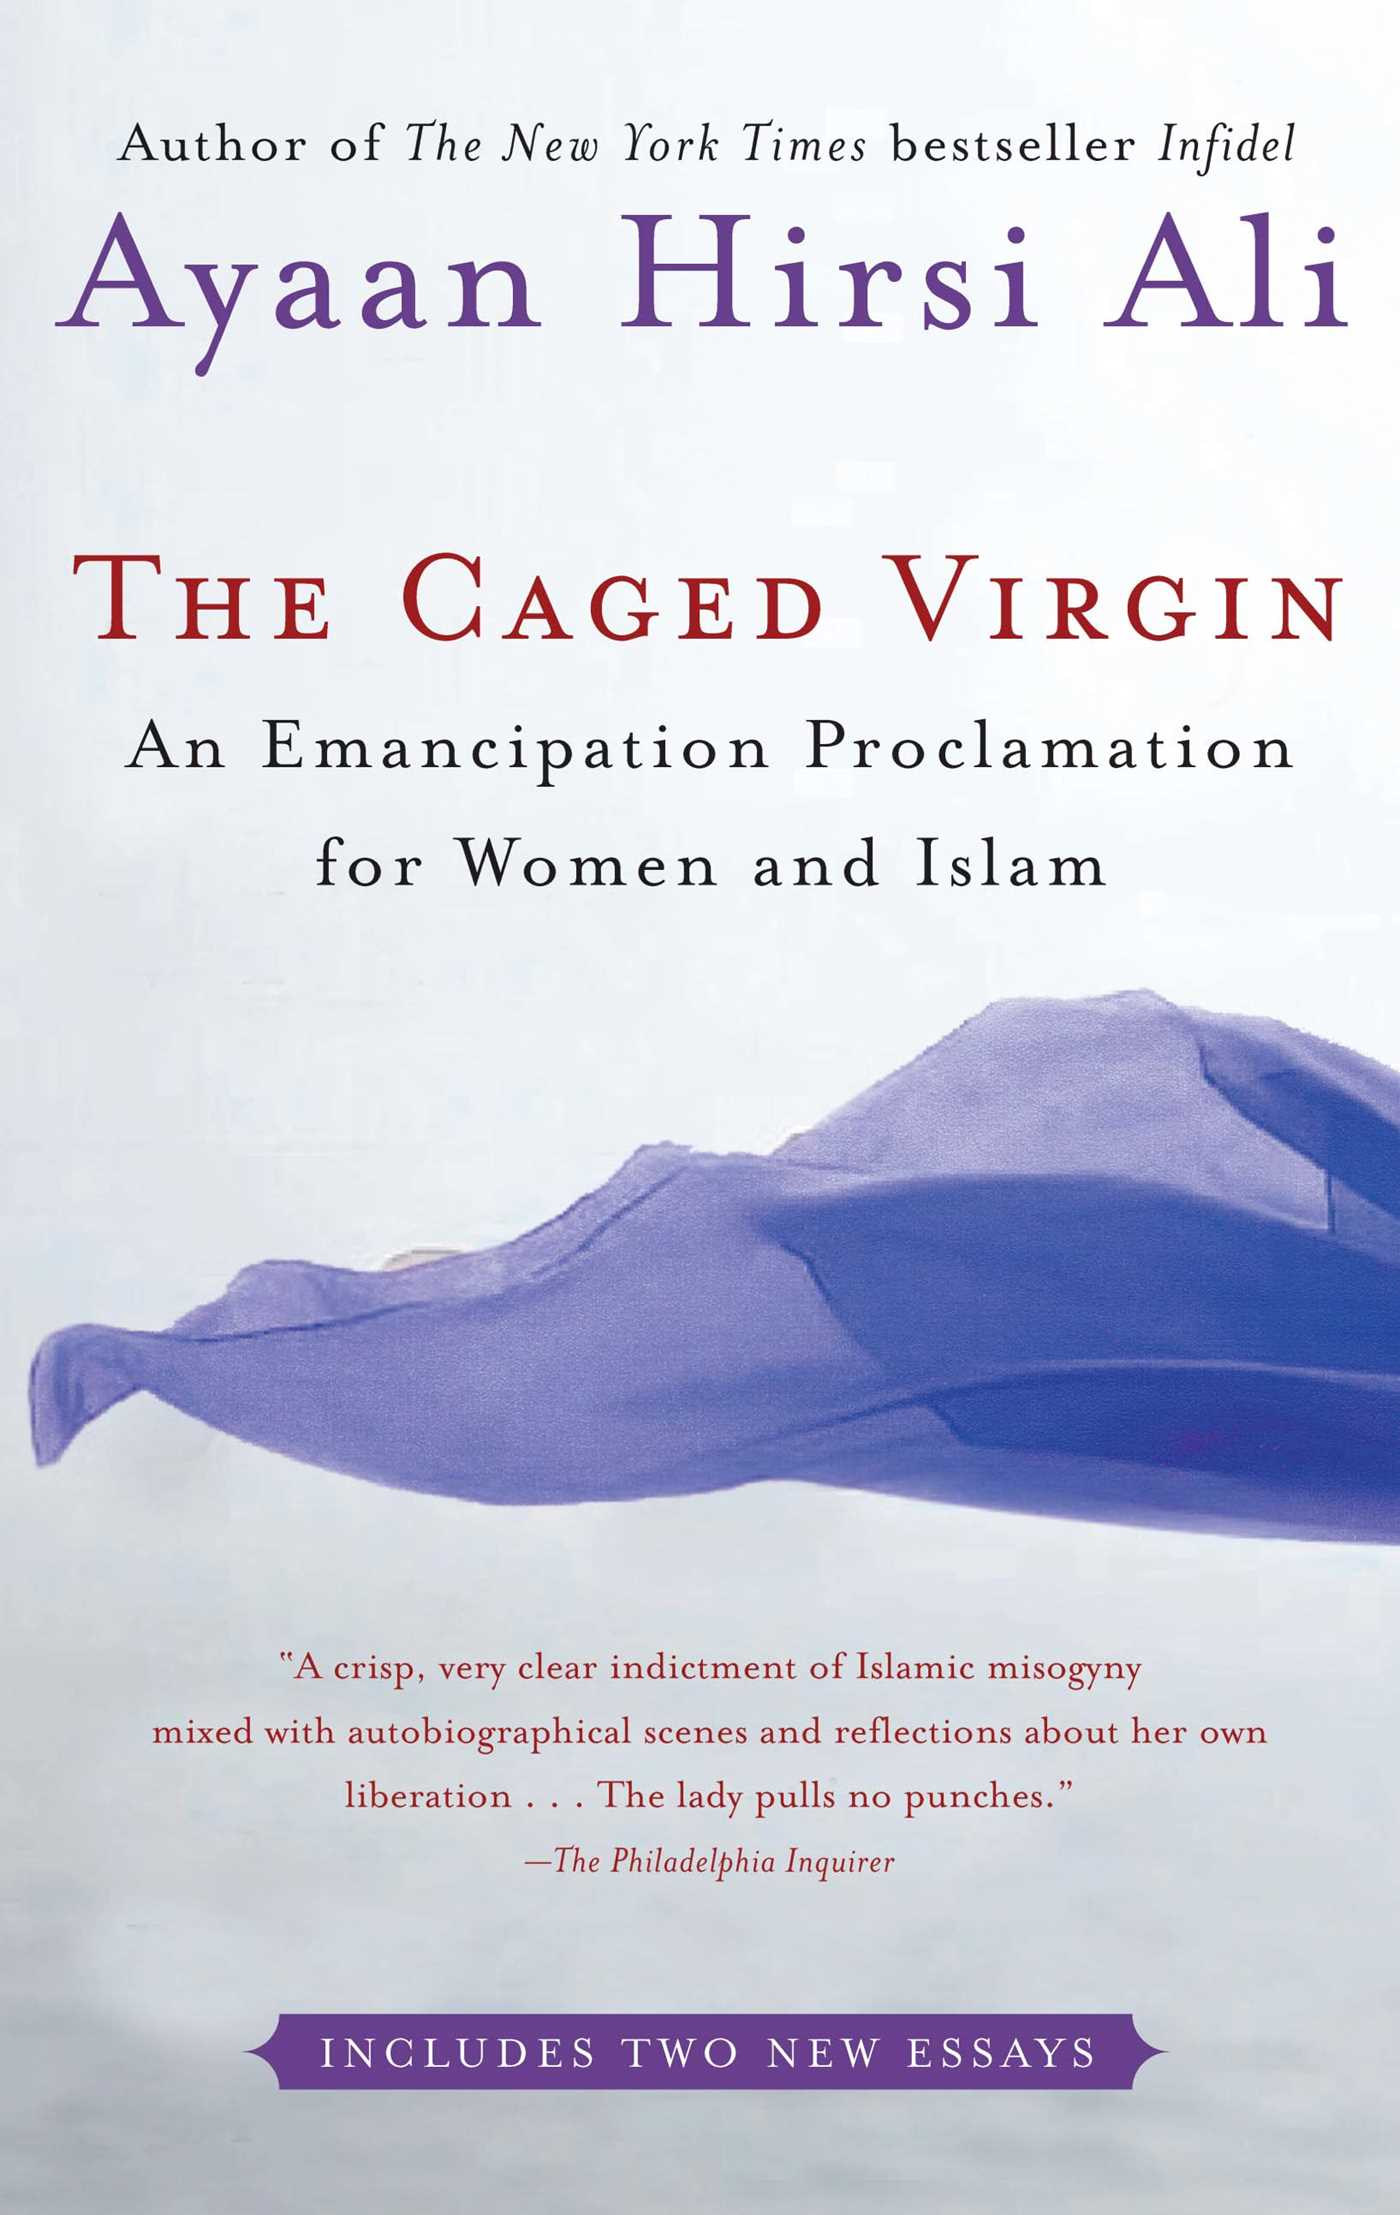 the caged virgin book by ayaan hirsi ali official publisher an emancipation proclamation for women and islam